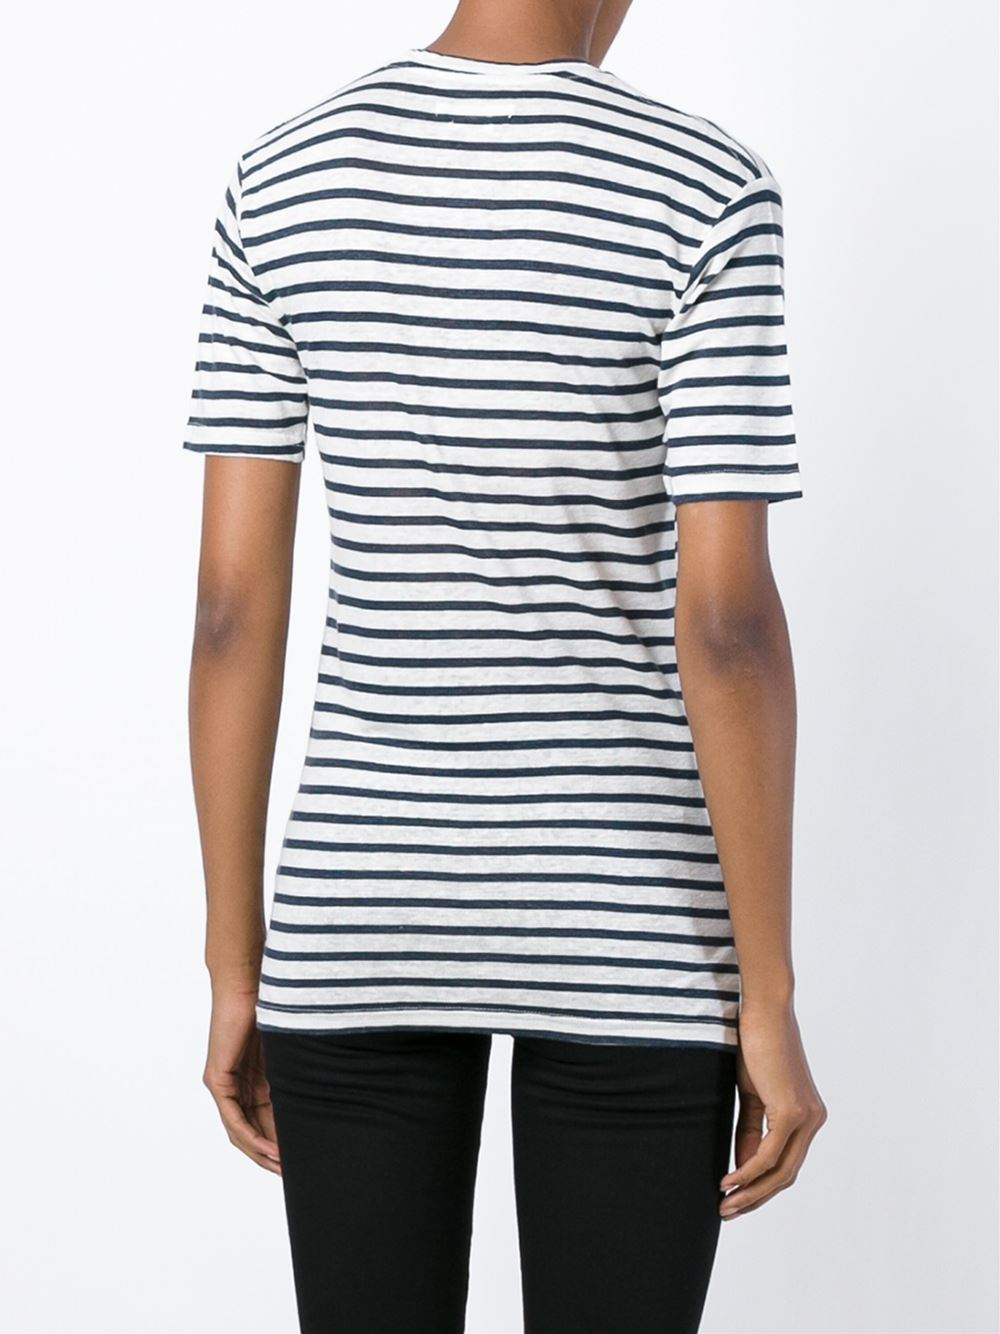 Toile isabel marant 39 ken 39 t shirt in blue lyst for Isabel marant t shirt sale